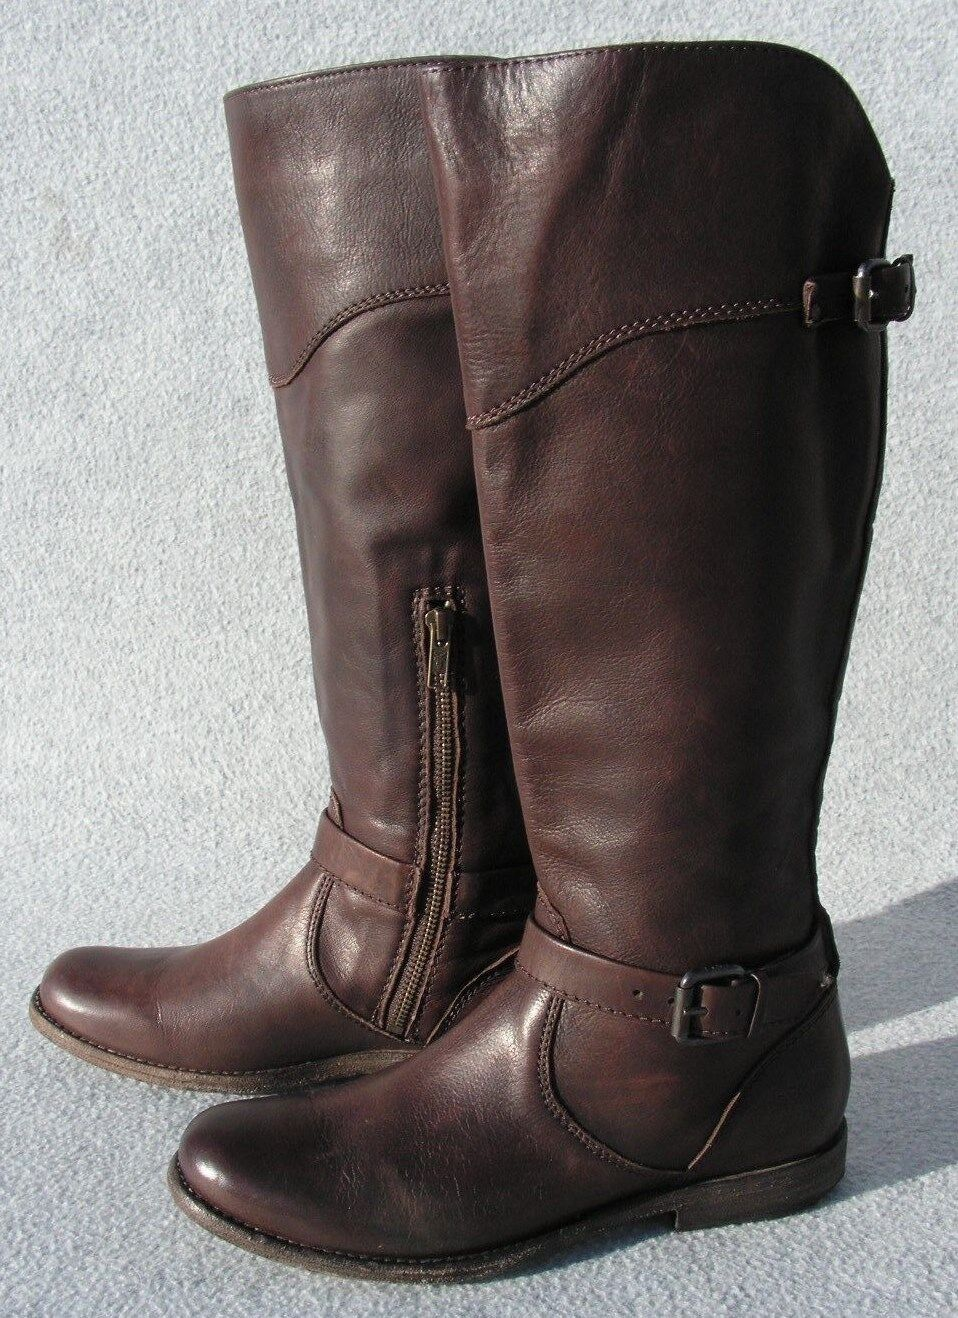 Frye Phillip Tall Leather Riding Boot Size 7.5  Brown    NEW